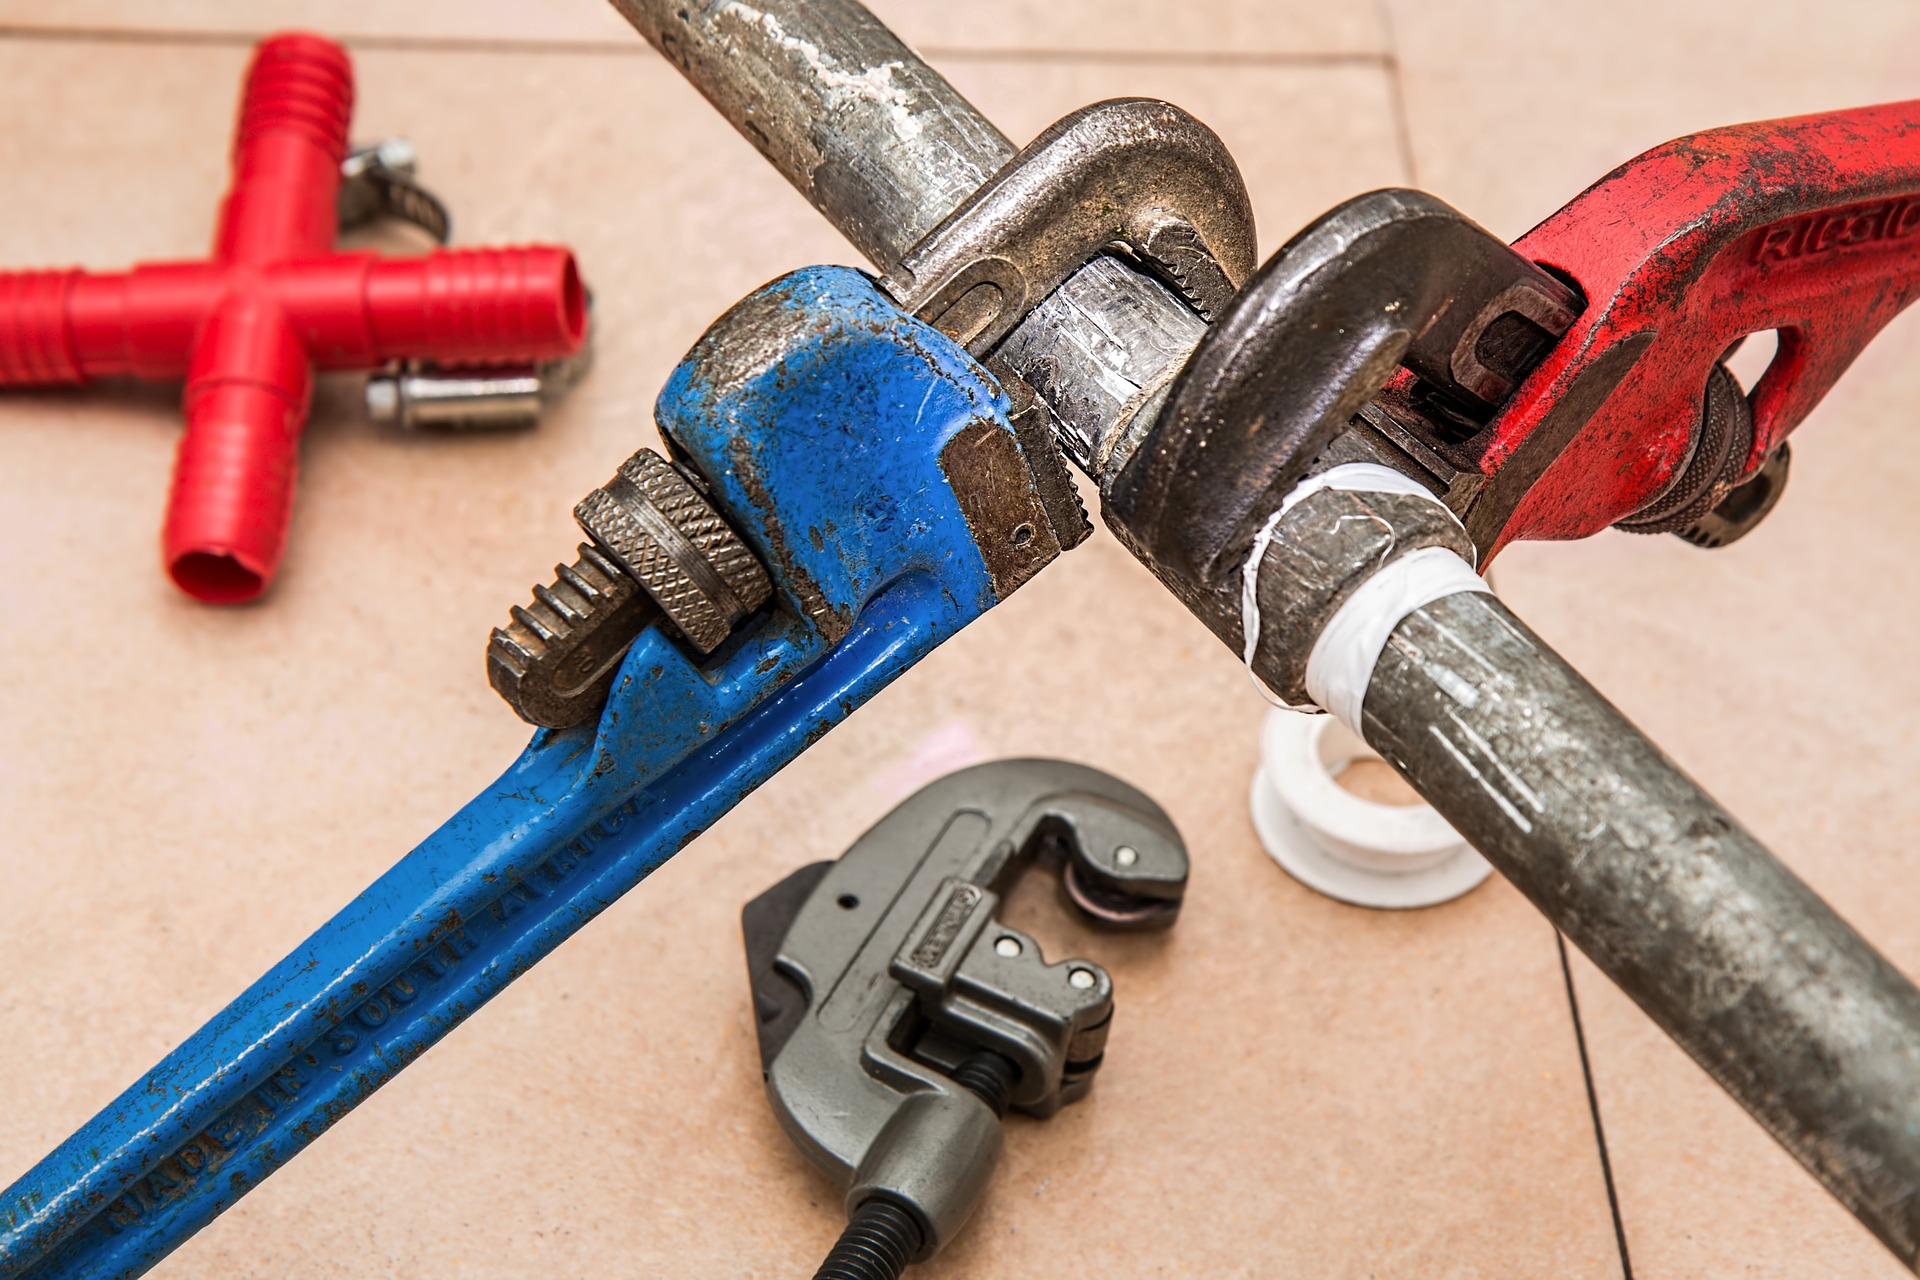 Be Prepared! Make Sure You Have These Plumbing Tools